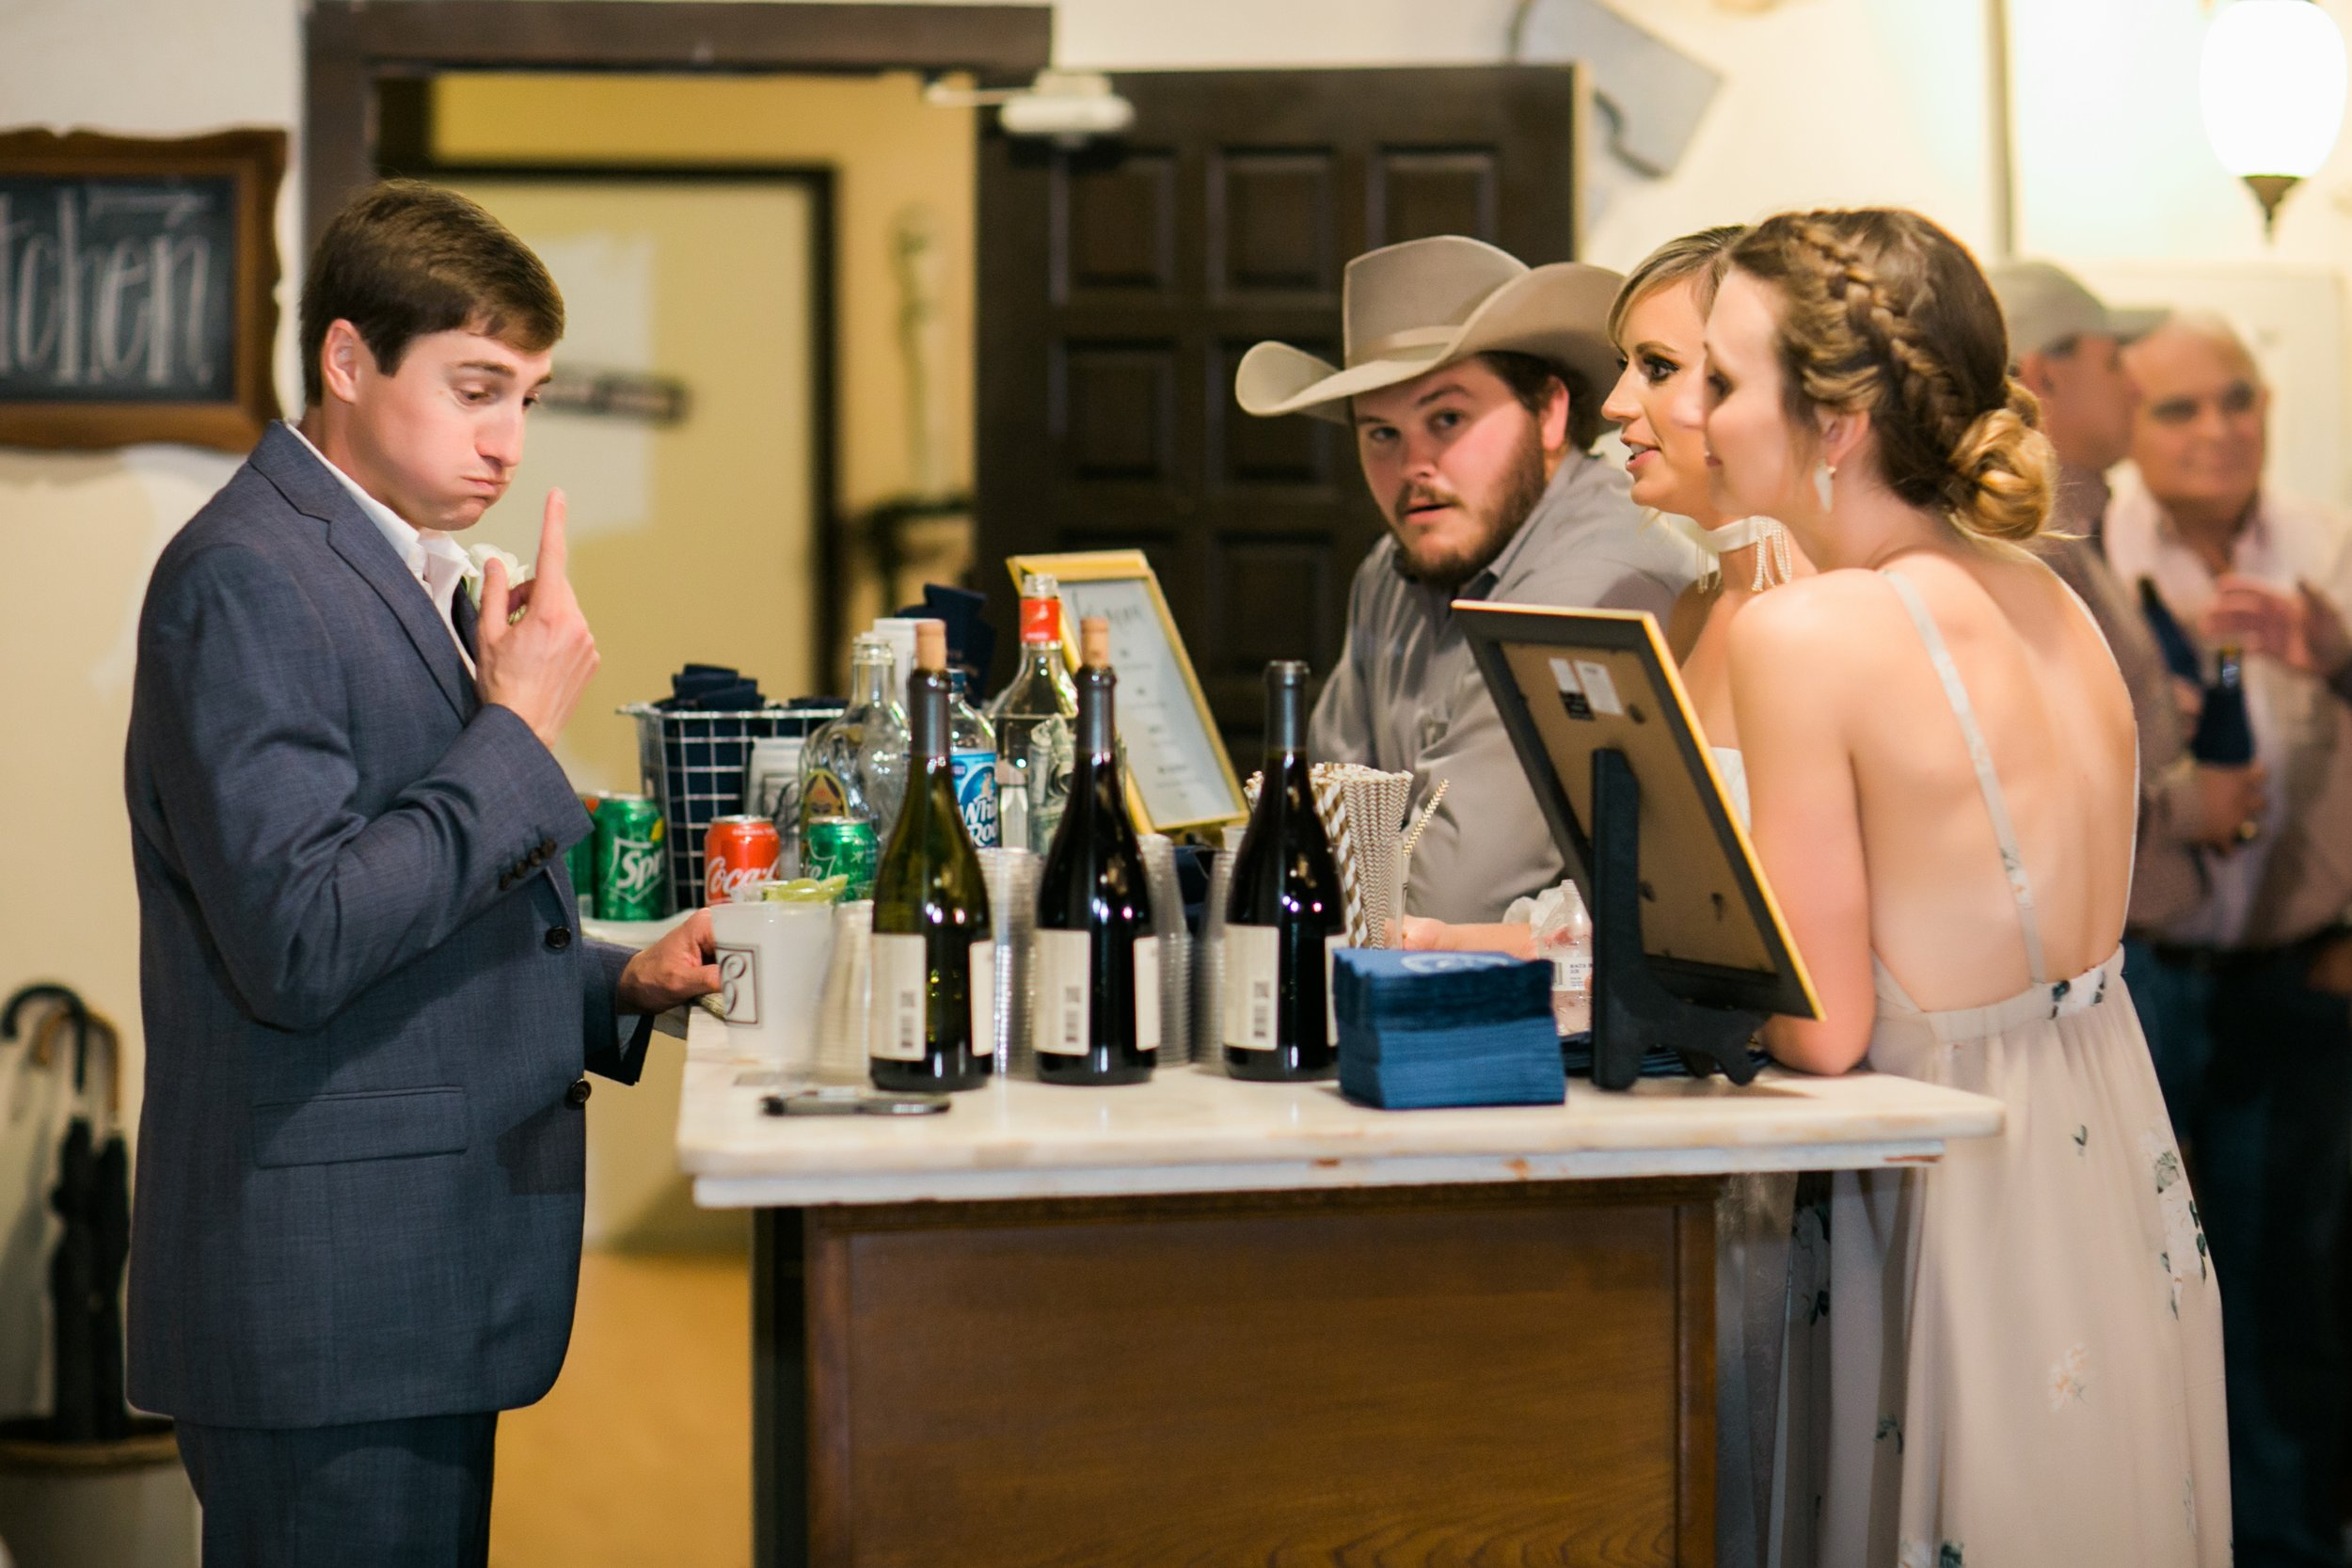 Magan-Landon-Surprise-wedding-at-southern-jeweled-warehouse-wichita-falls-texas-lauren-pinson-074.jpg